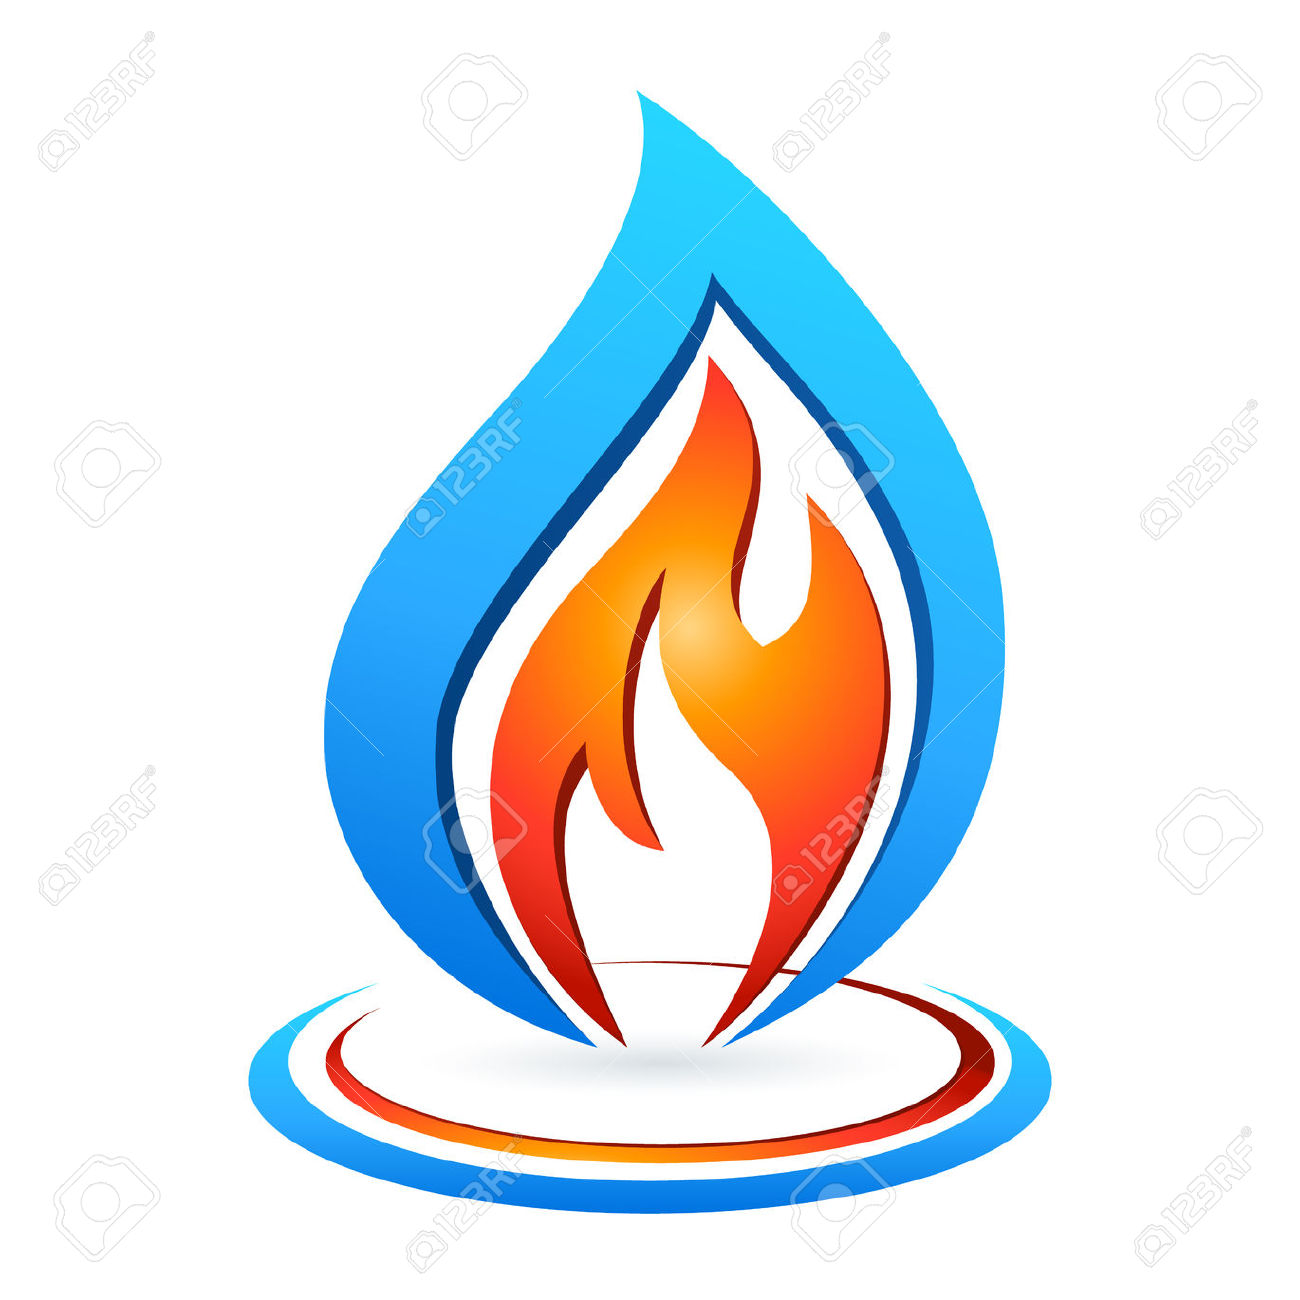 Gas flame clipart - Clipground